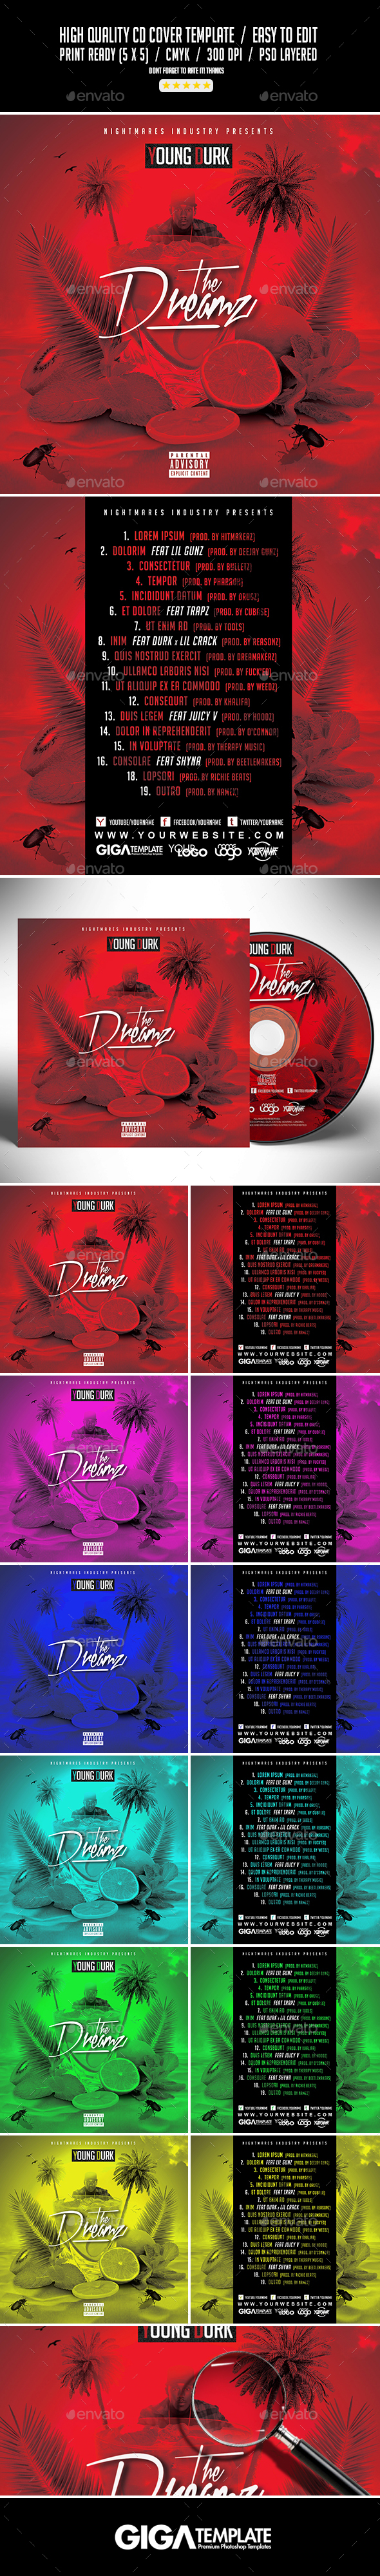 The Dreamz | Hip-Hop Mixtape Album CD Cover Template - CD & DVD Artwork Print Templates